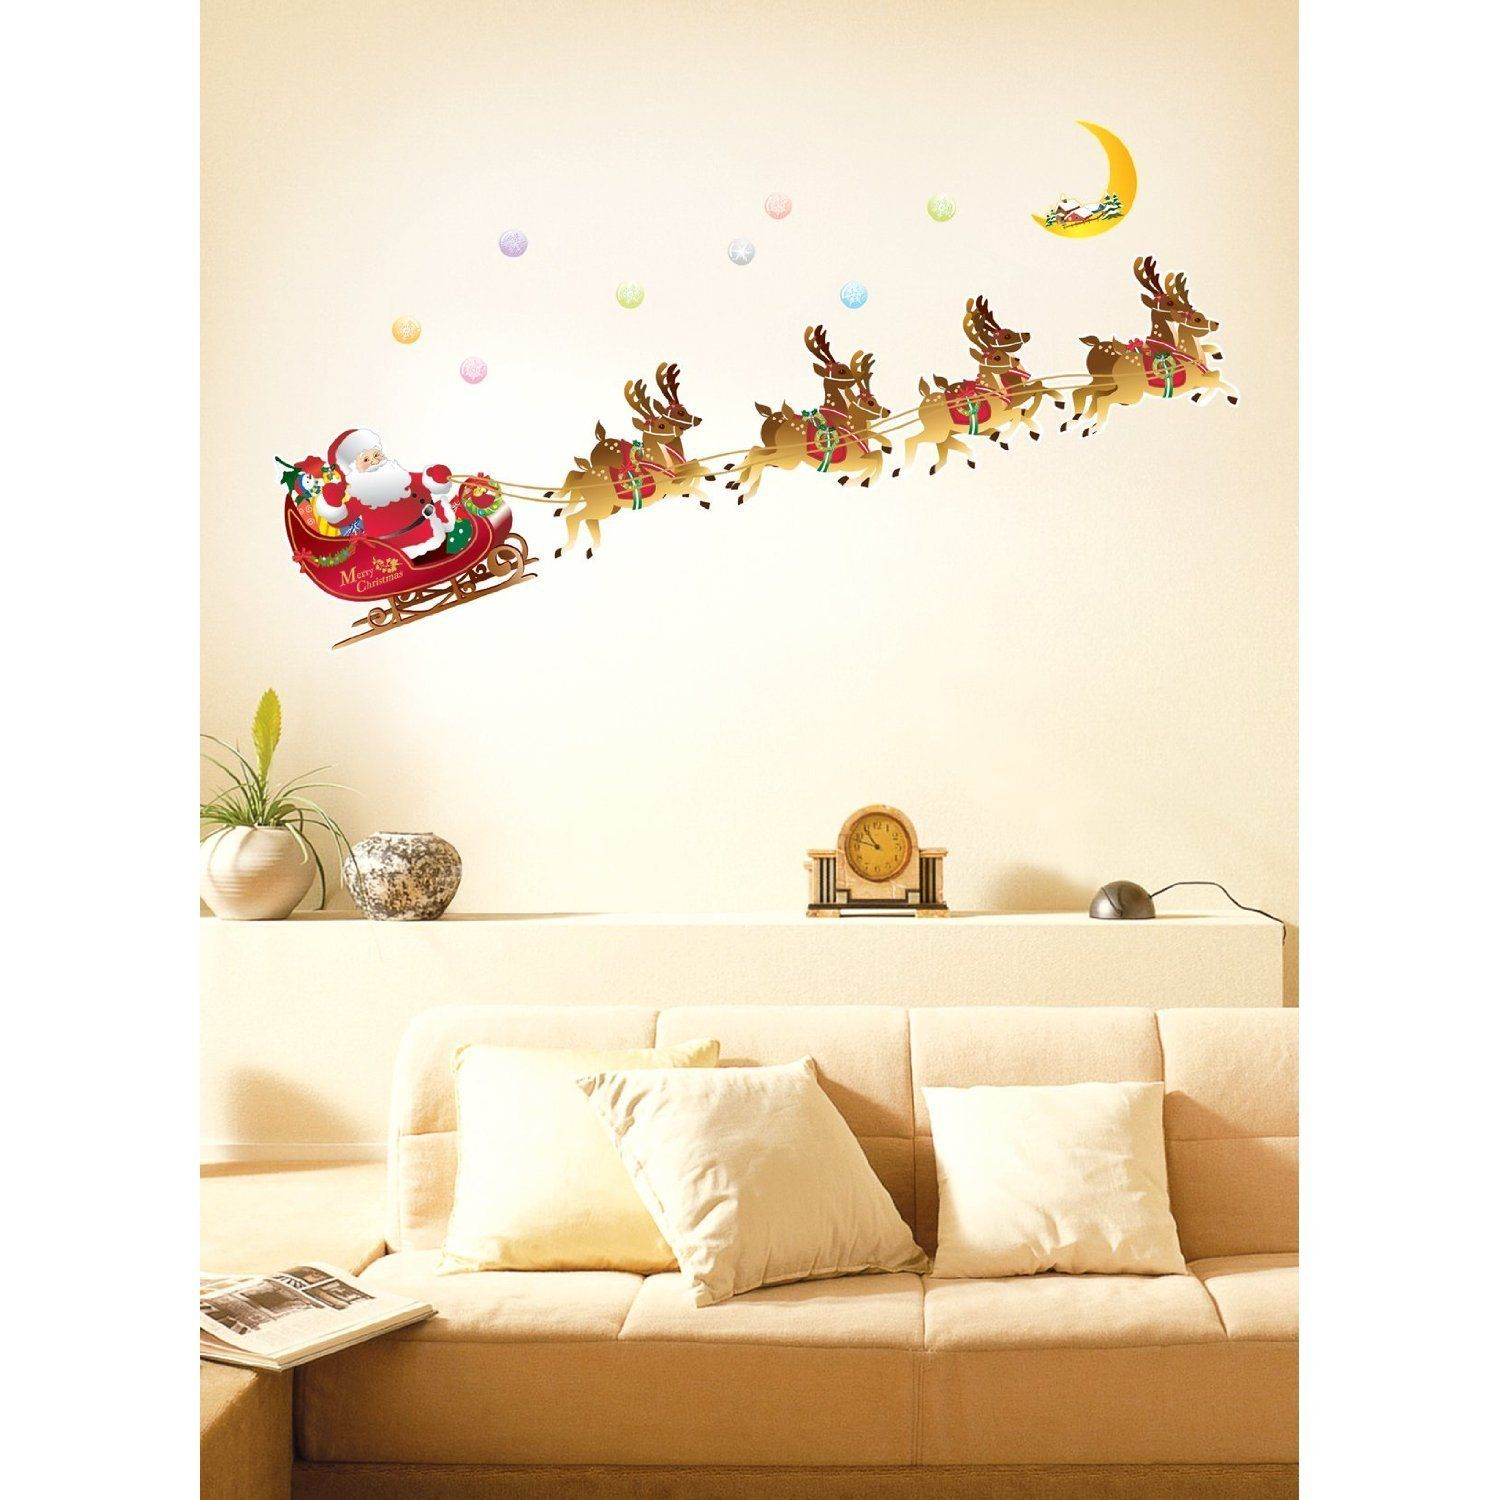 Christmas special dcor ideas for your home christmas wall christmas special dcor ideas for your home wall decoration stickerswall amipublicfo Gallery